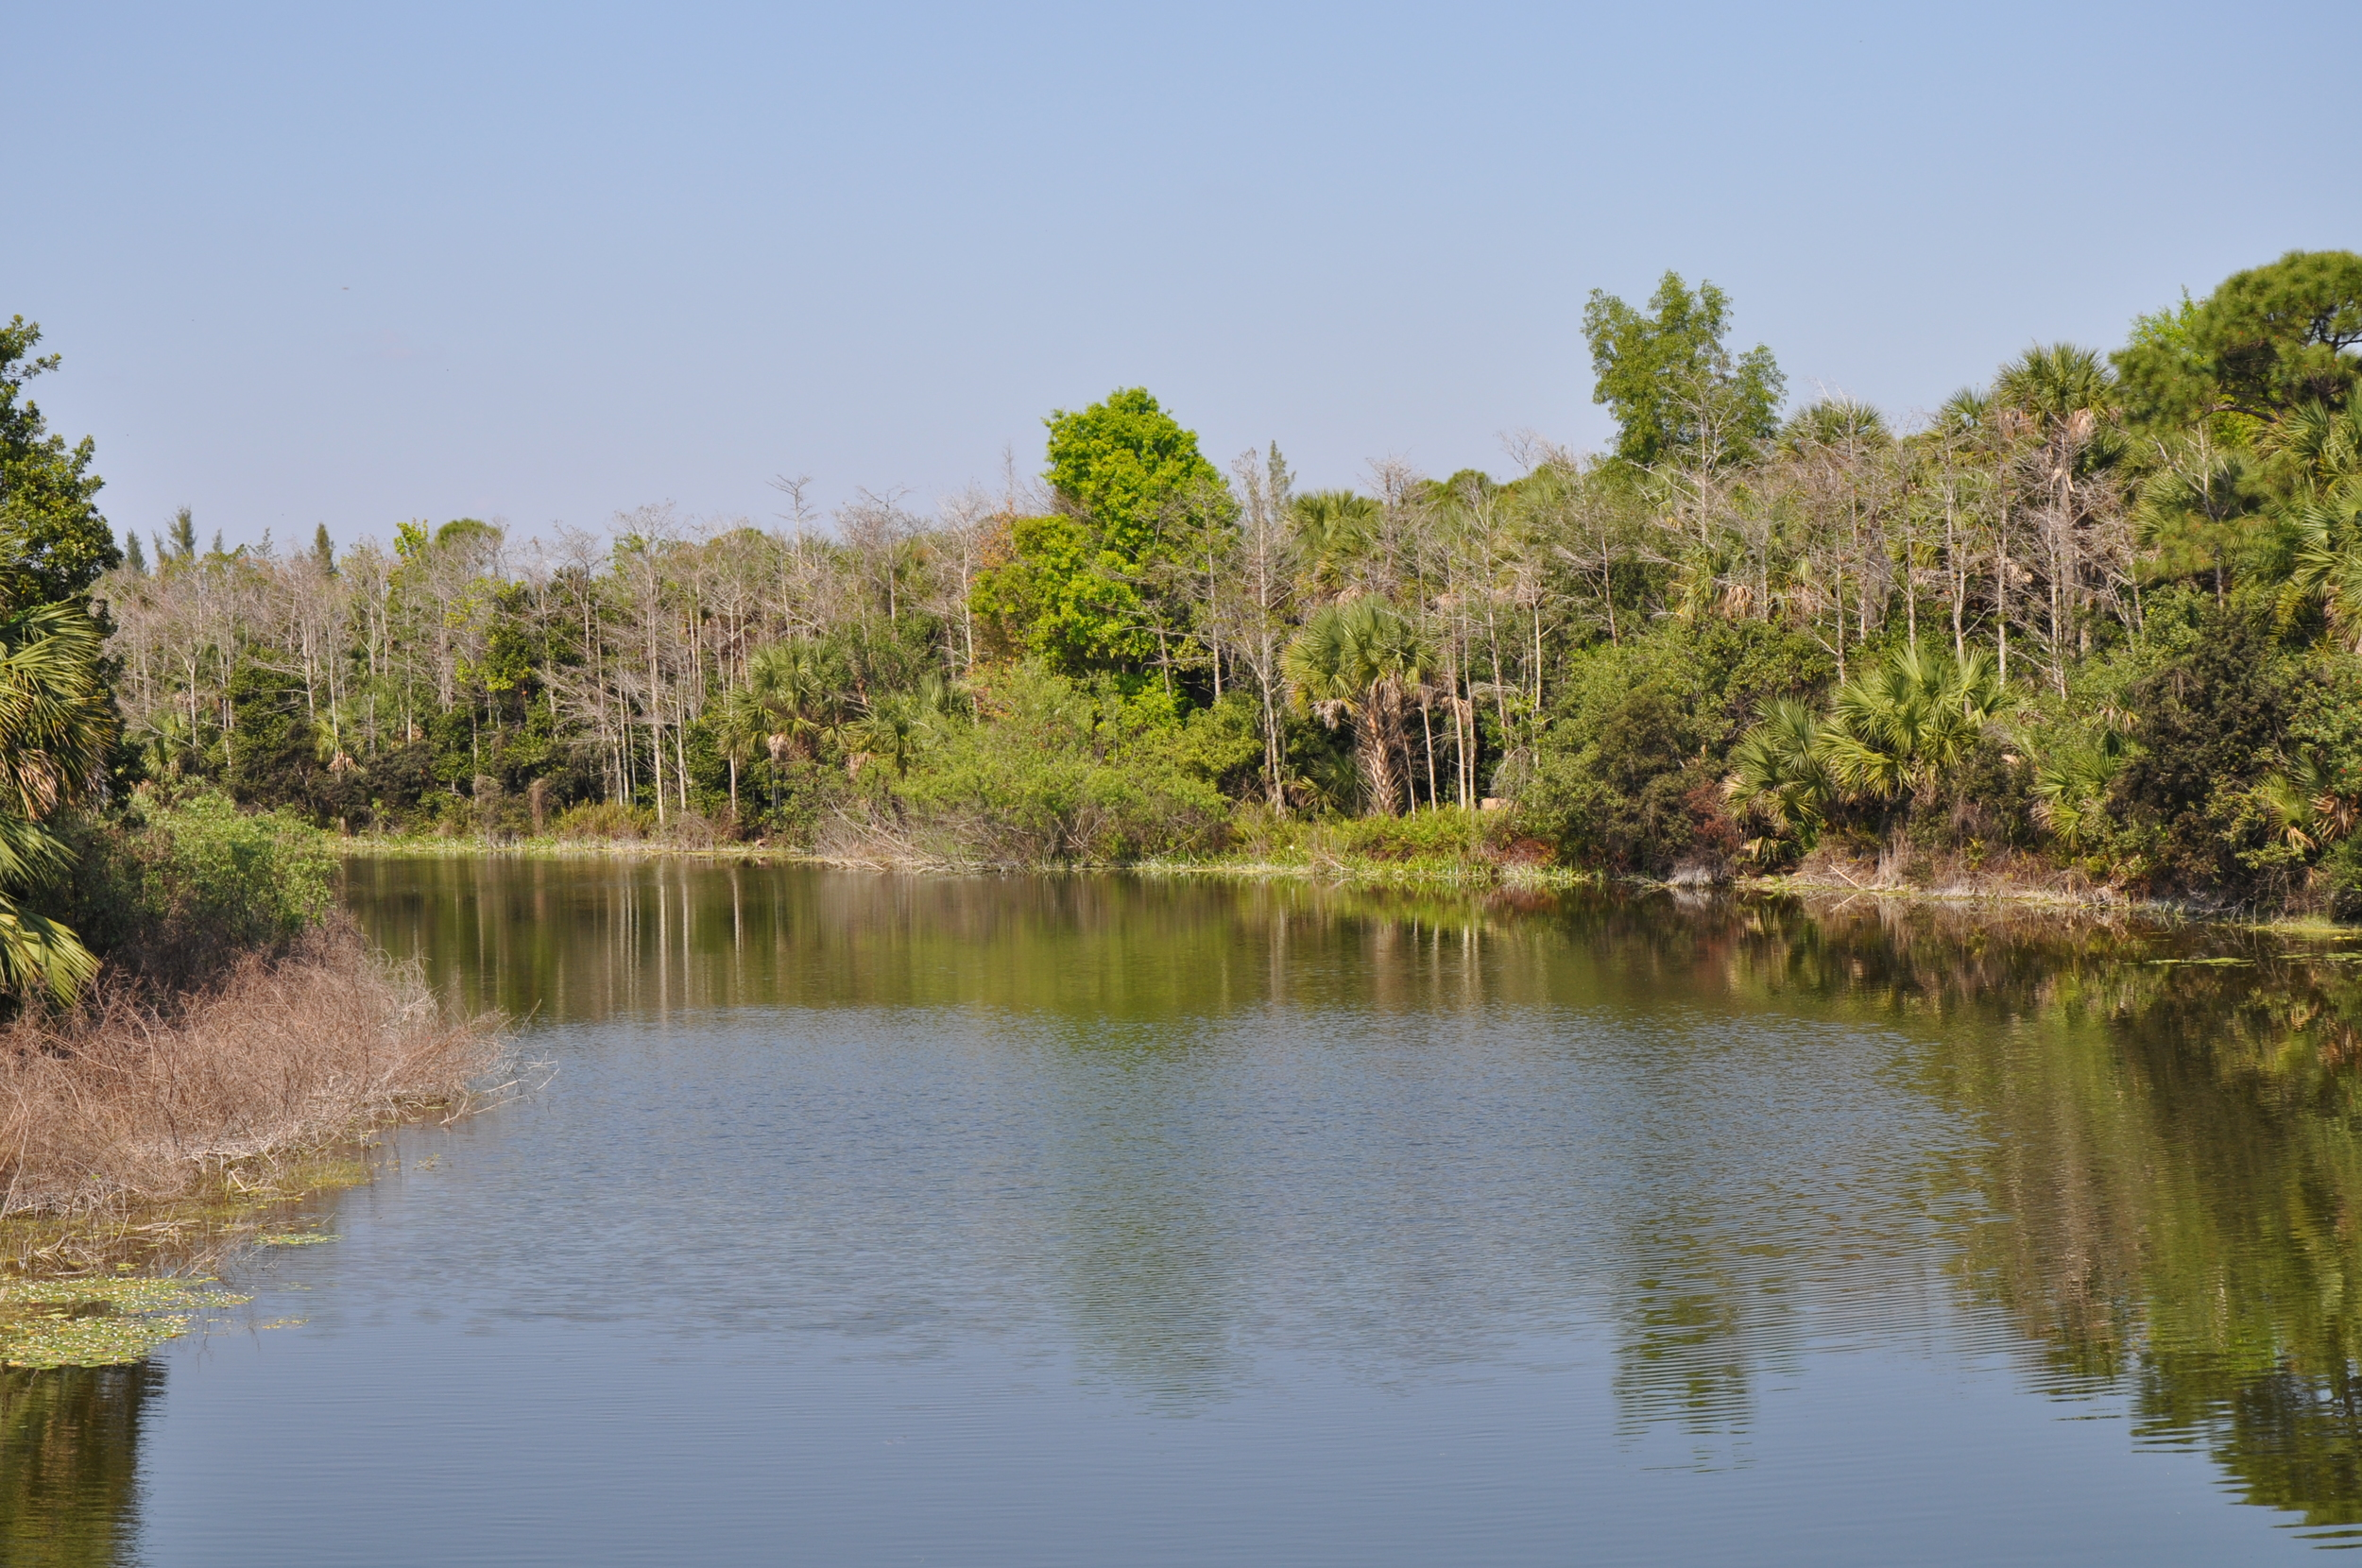 Dyer Landfill Reclamation Palm Beach County Florida Restored Natural Area.JPG